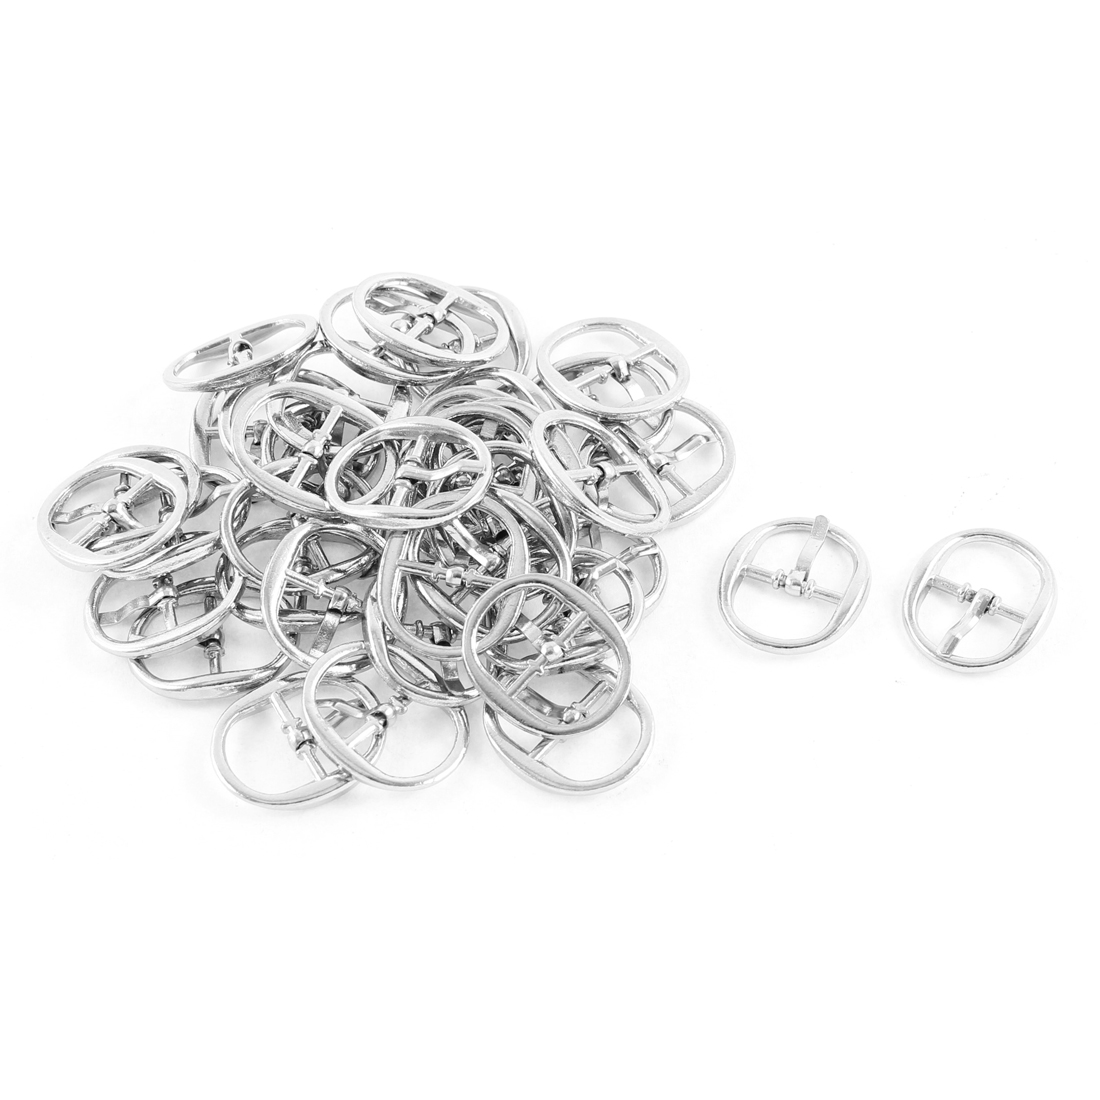 40 Pcs Silver Tone Metal Single Prong Pin Oval Shoes Clip Buckles